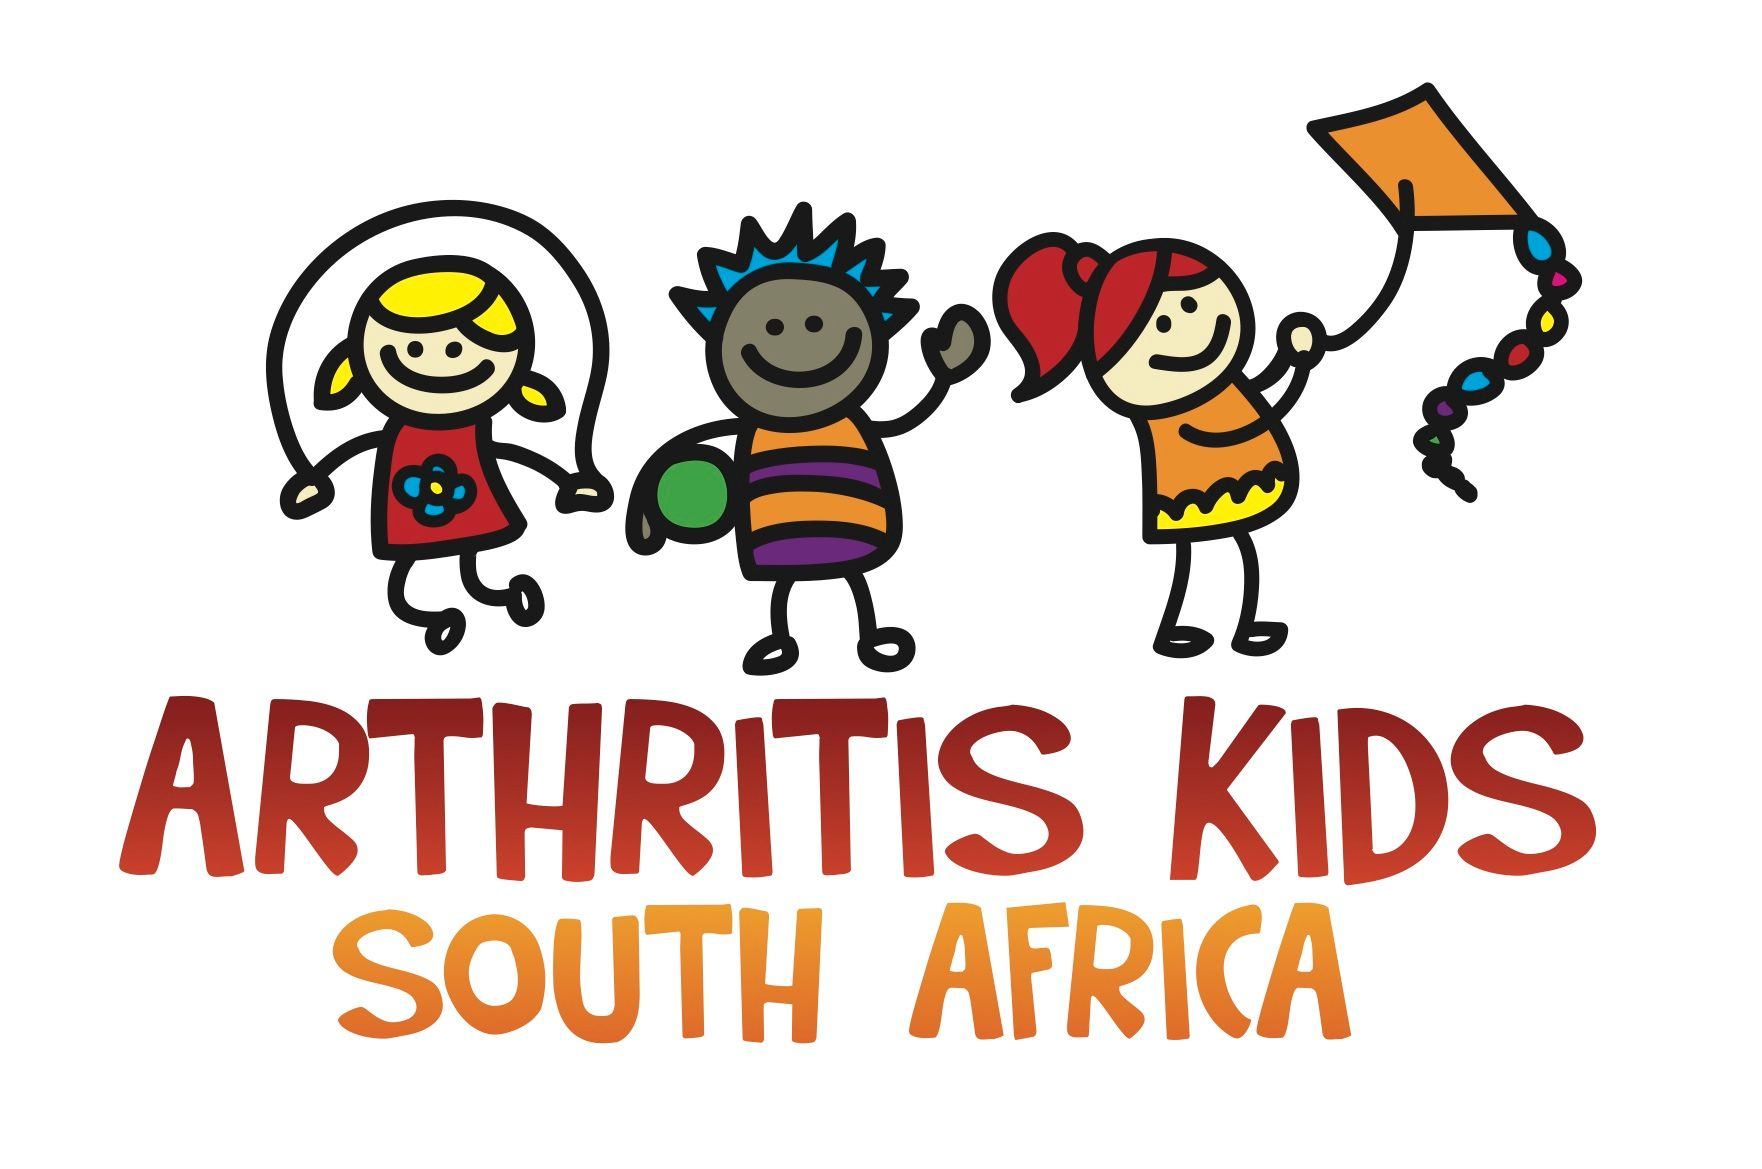 Arthritis Kids South Africa Thumb Image